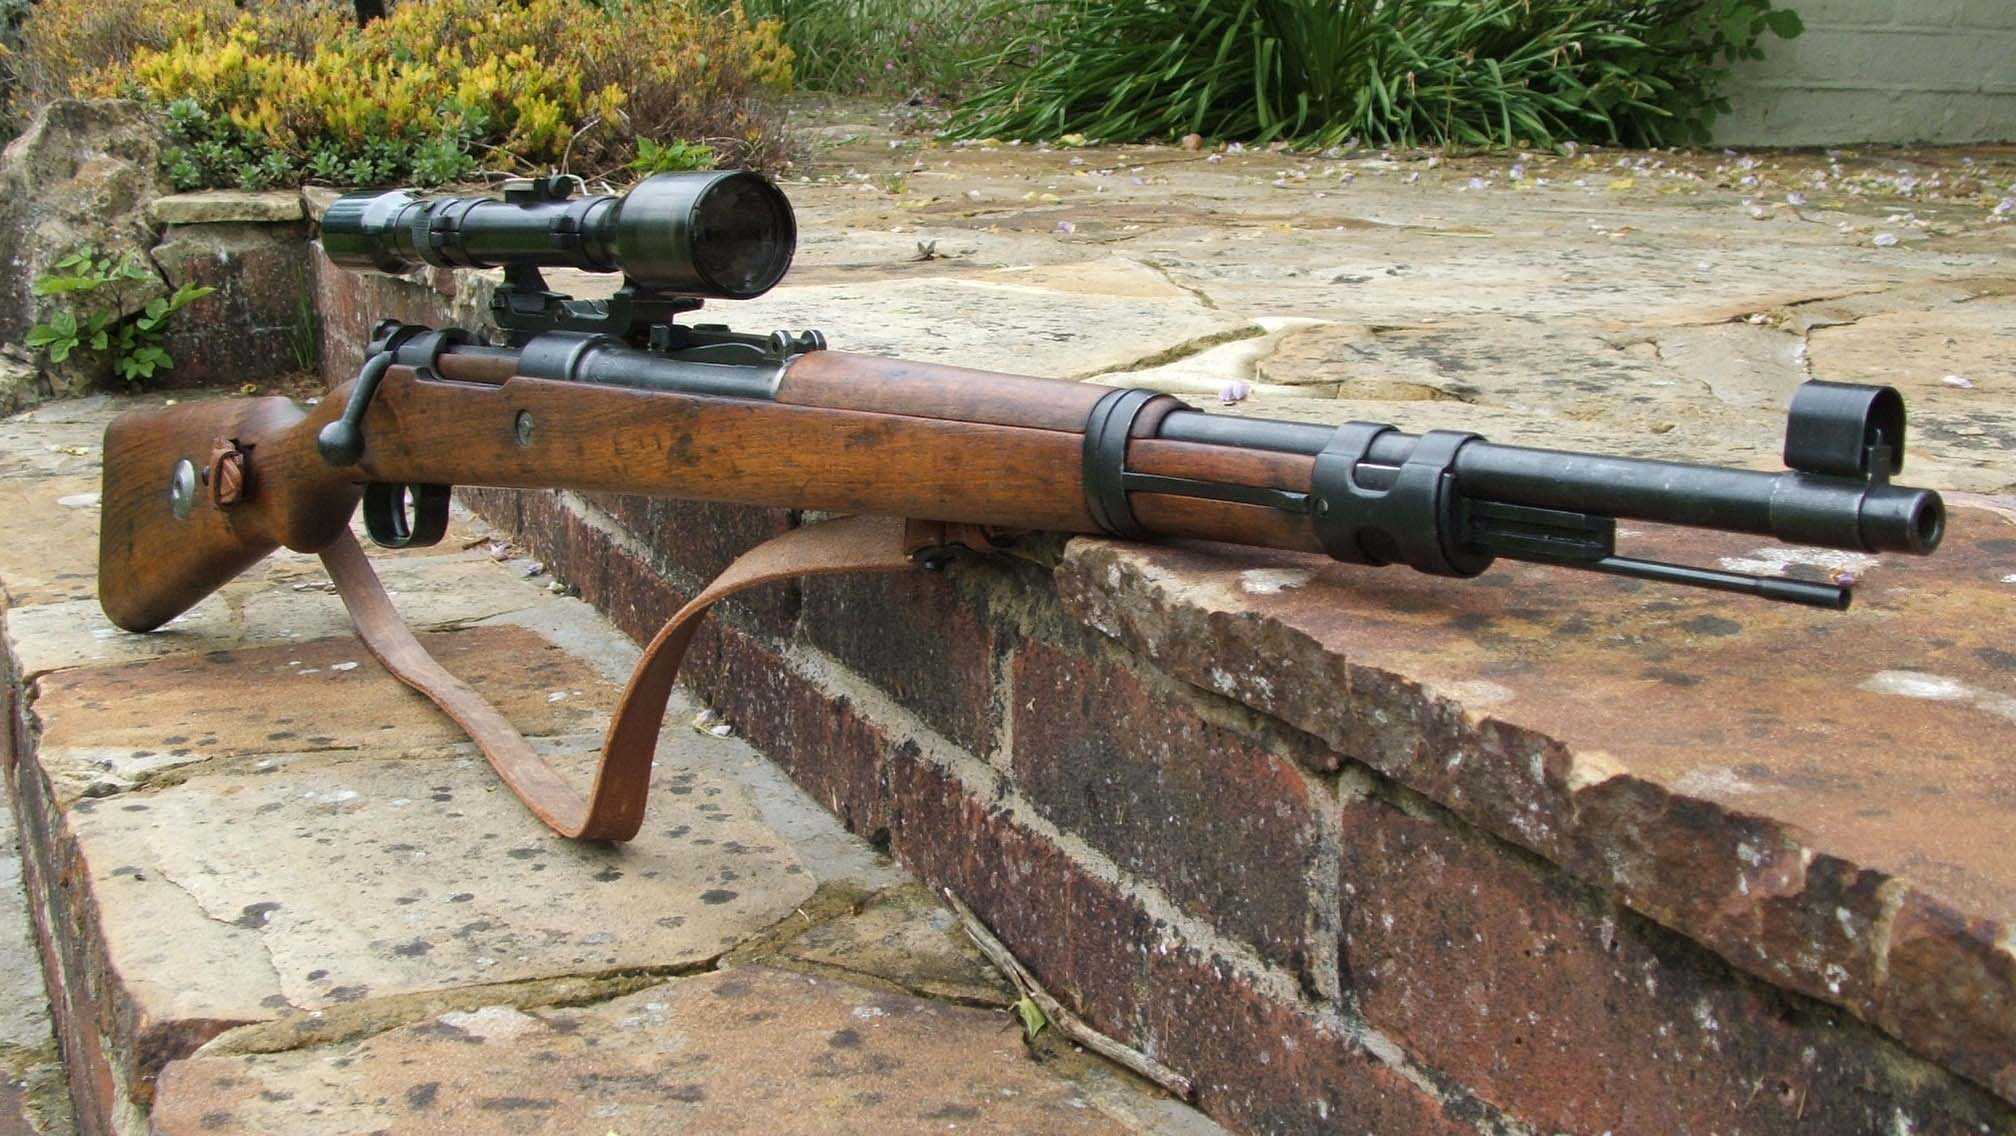 Mauser K98 Sniper Rifle Image Military Personnel Arms Mod Db